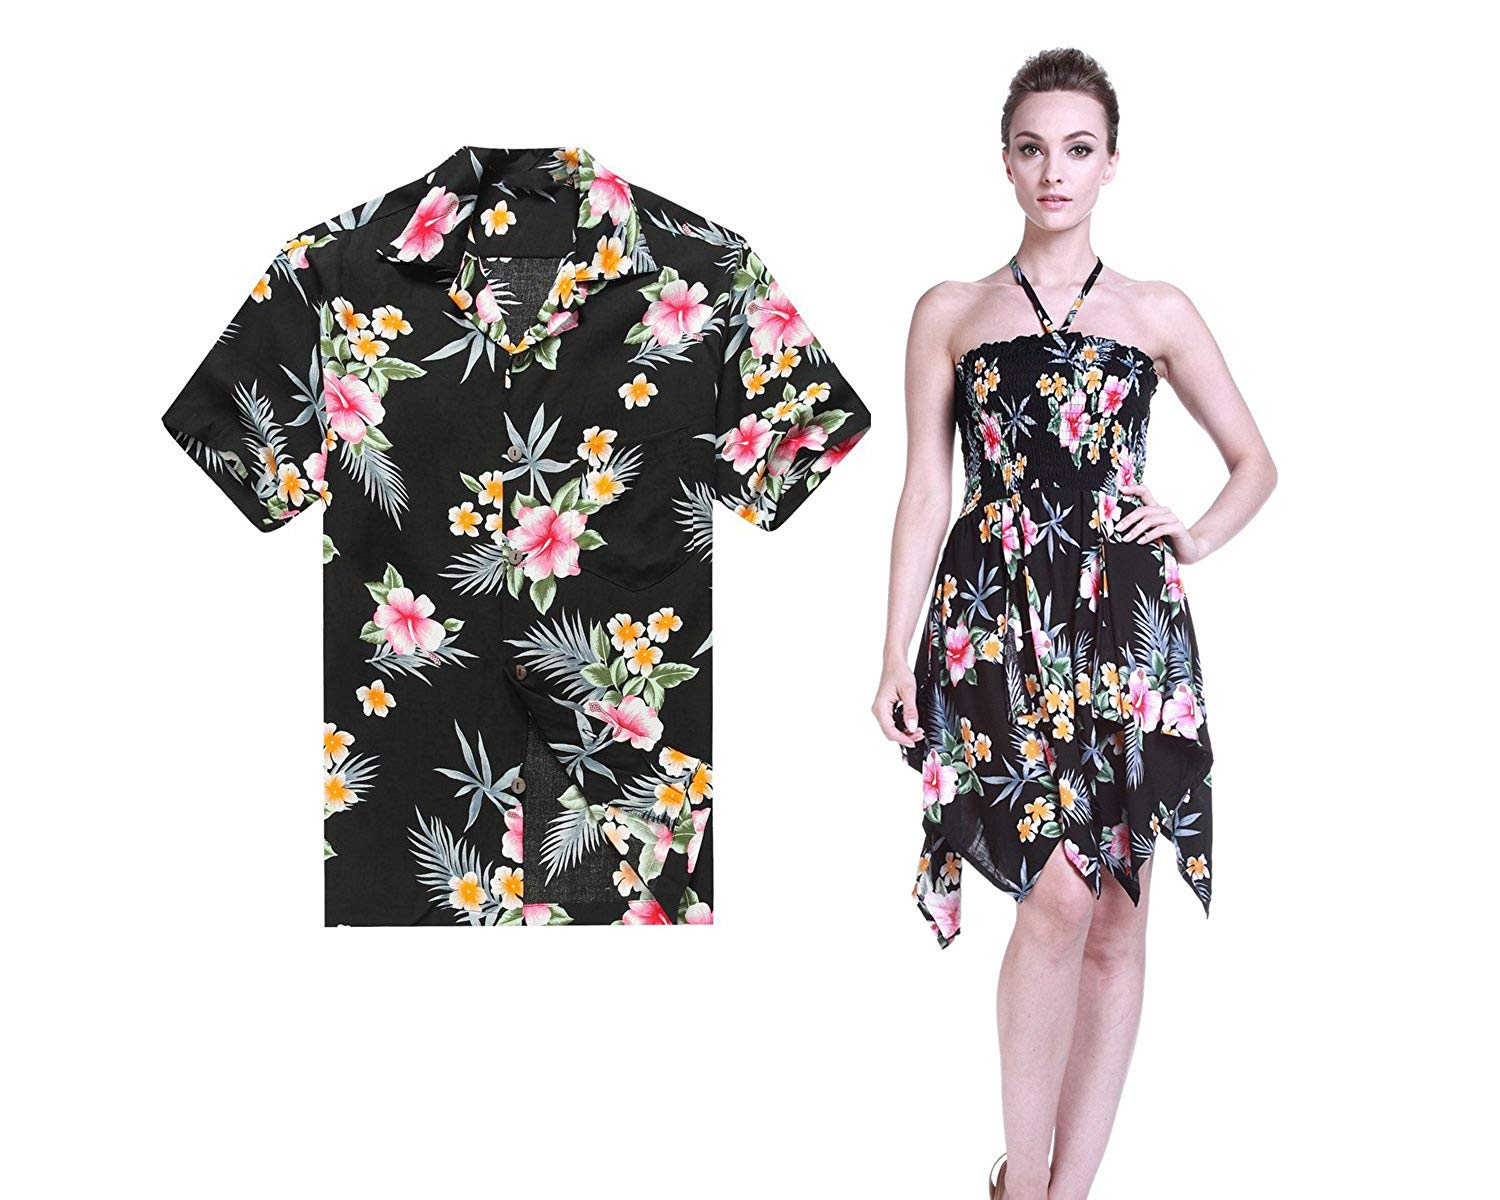 394bed6908a4 Get Quotations · Hawaii Hangover Couple Matching Hawaiian Luau Aloha Shirt  Gypsy Dress In Hibiscus Blue